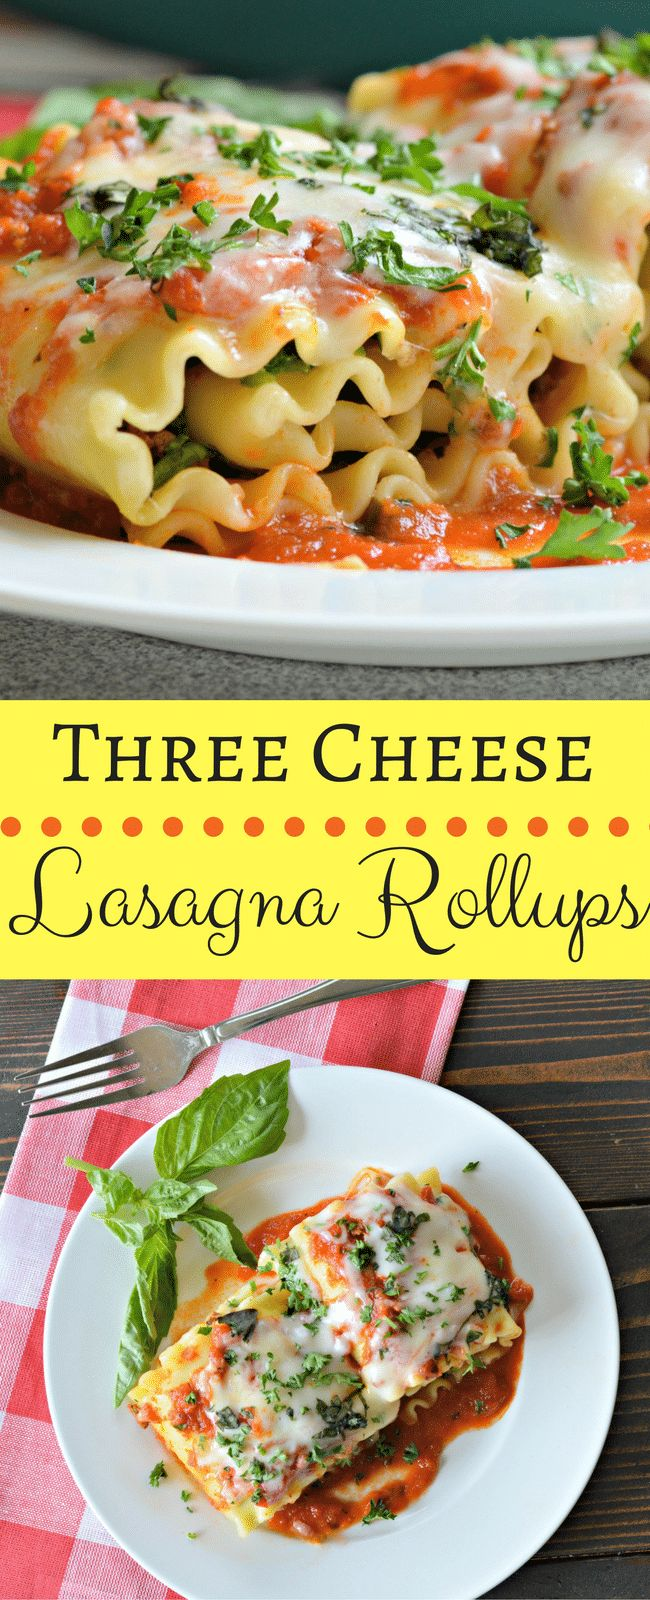 If you are like us and love lasagna in any form, then you should try this recipe for three cheese lasagna rollups. Keep reading to find out how easy it is!